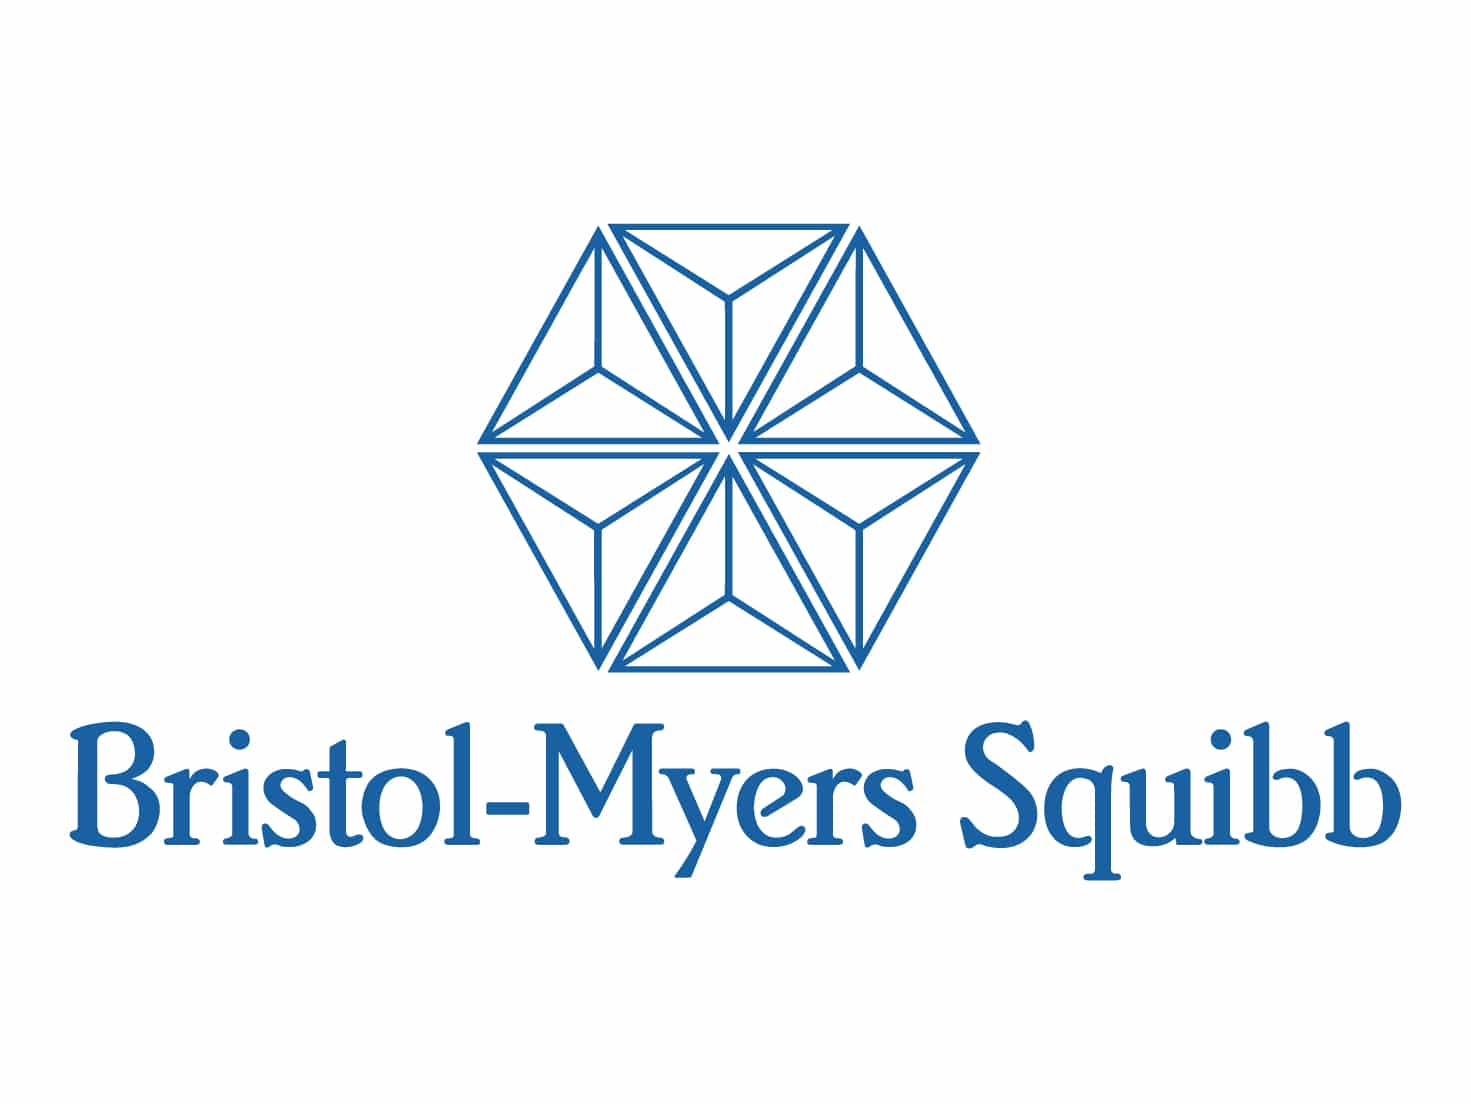 Bristol-Meyers Squibb